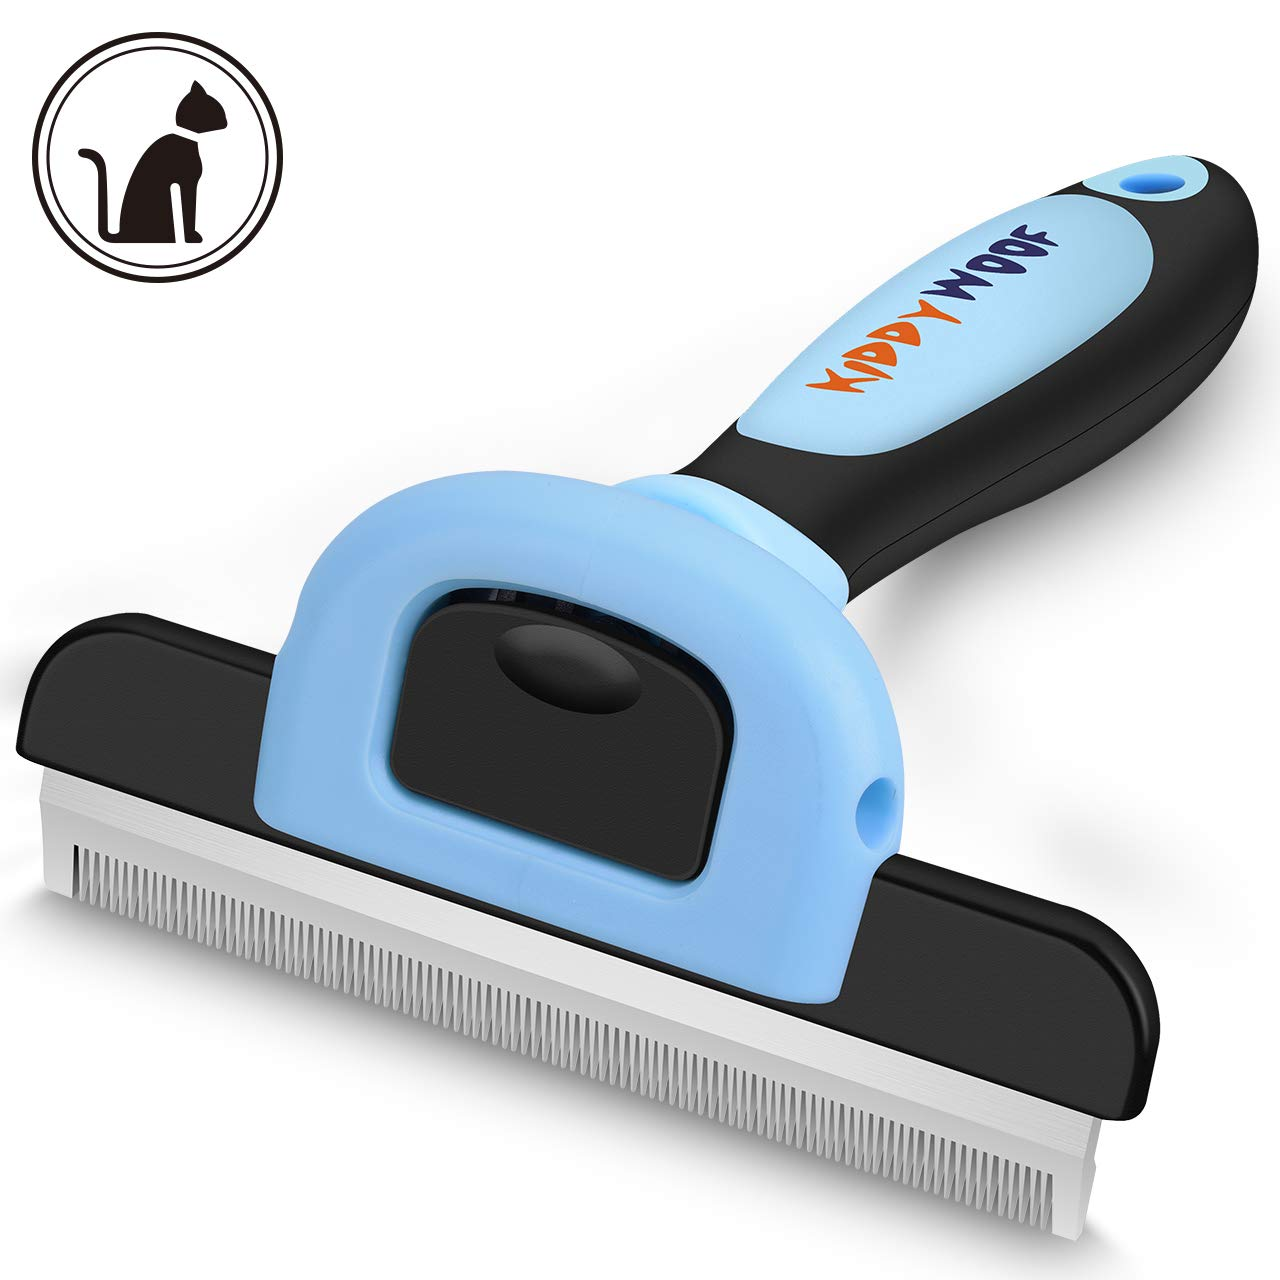 KiddyWoof Pet Grooming Brush for Dogs & Cats, Deshedding Tool with Setainless Steel Effectively Reduces Shedding Byup to 95%, Perfect for Short Or Long Hair, Small & Large Pets by KiddyWoof